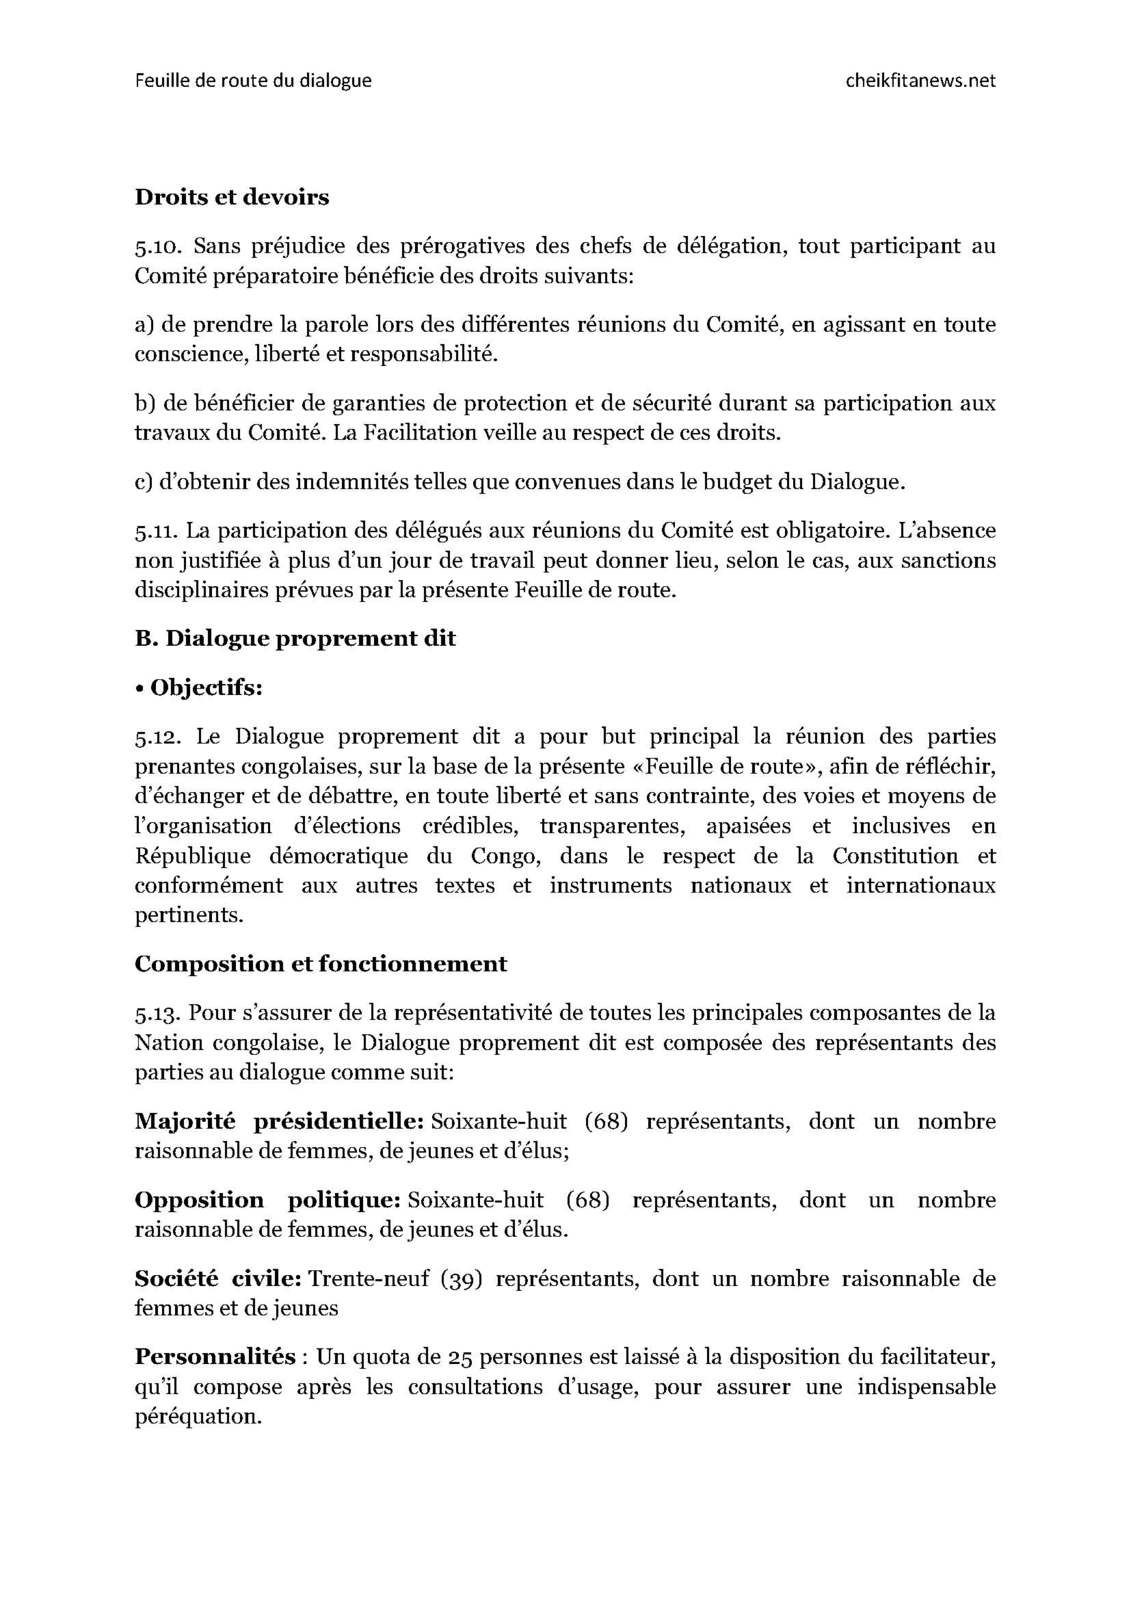 Document. Feuille de route du Dialogue de Kodjo